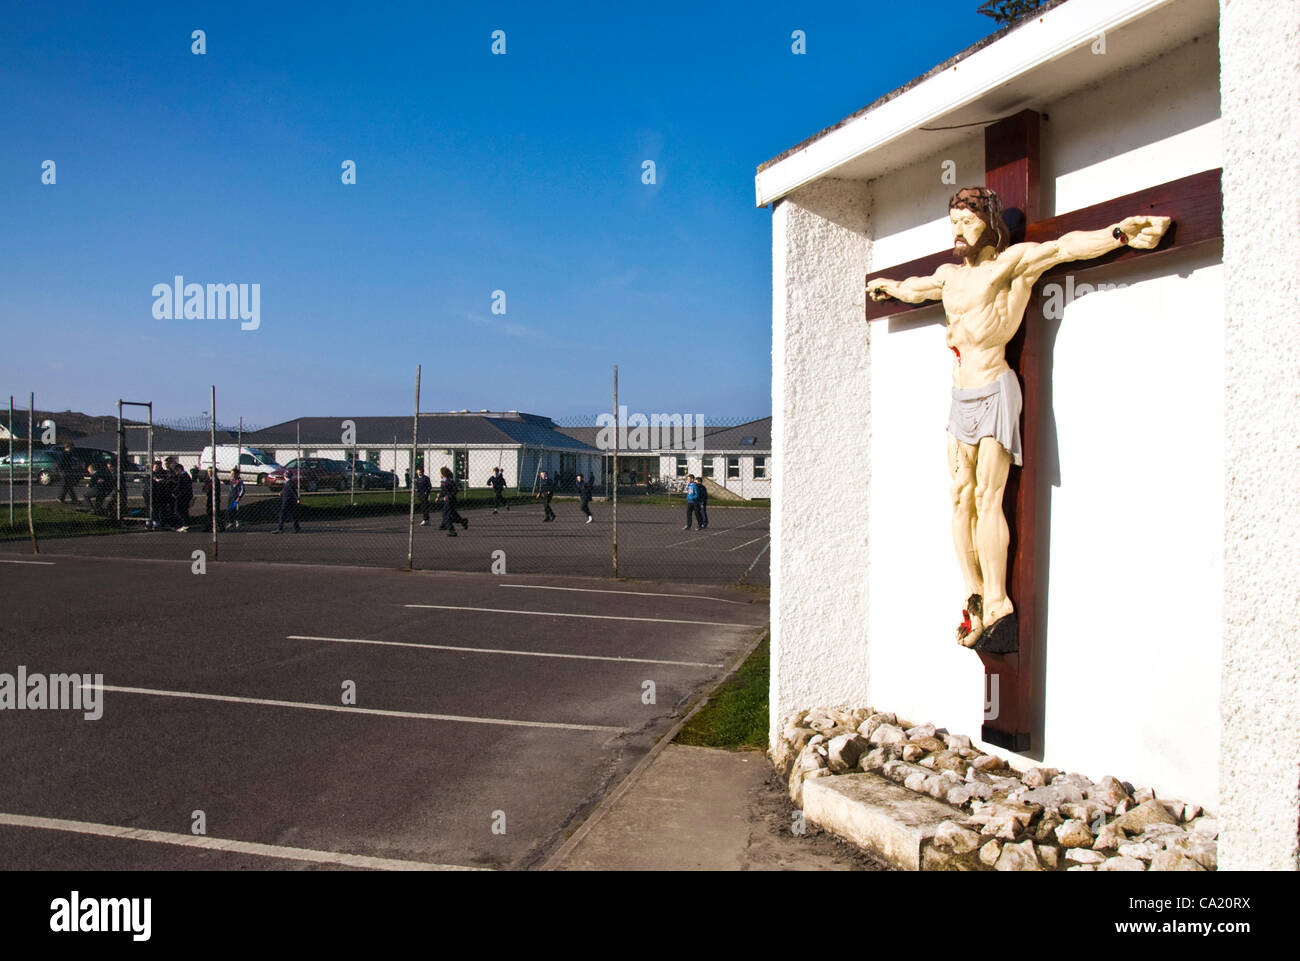 22/03/2012 St. Crona's School, Dungloe, County Donegal, Ireland. Children play in playground of a Roman Catholic Stock Photo